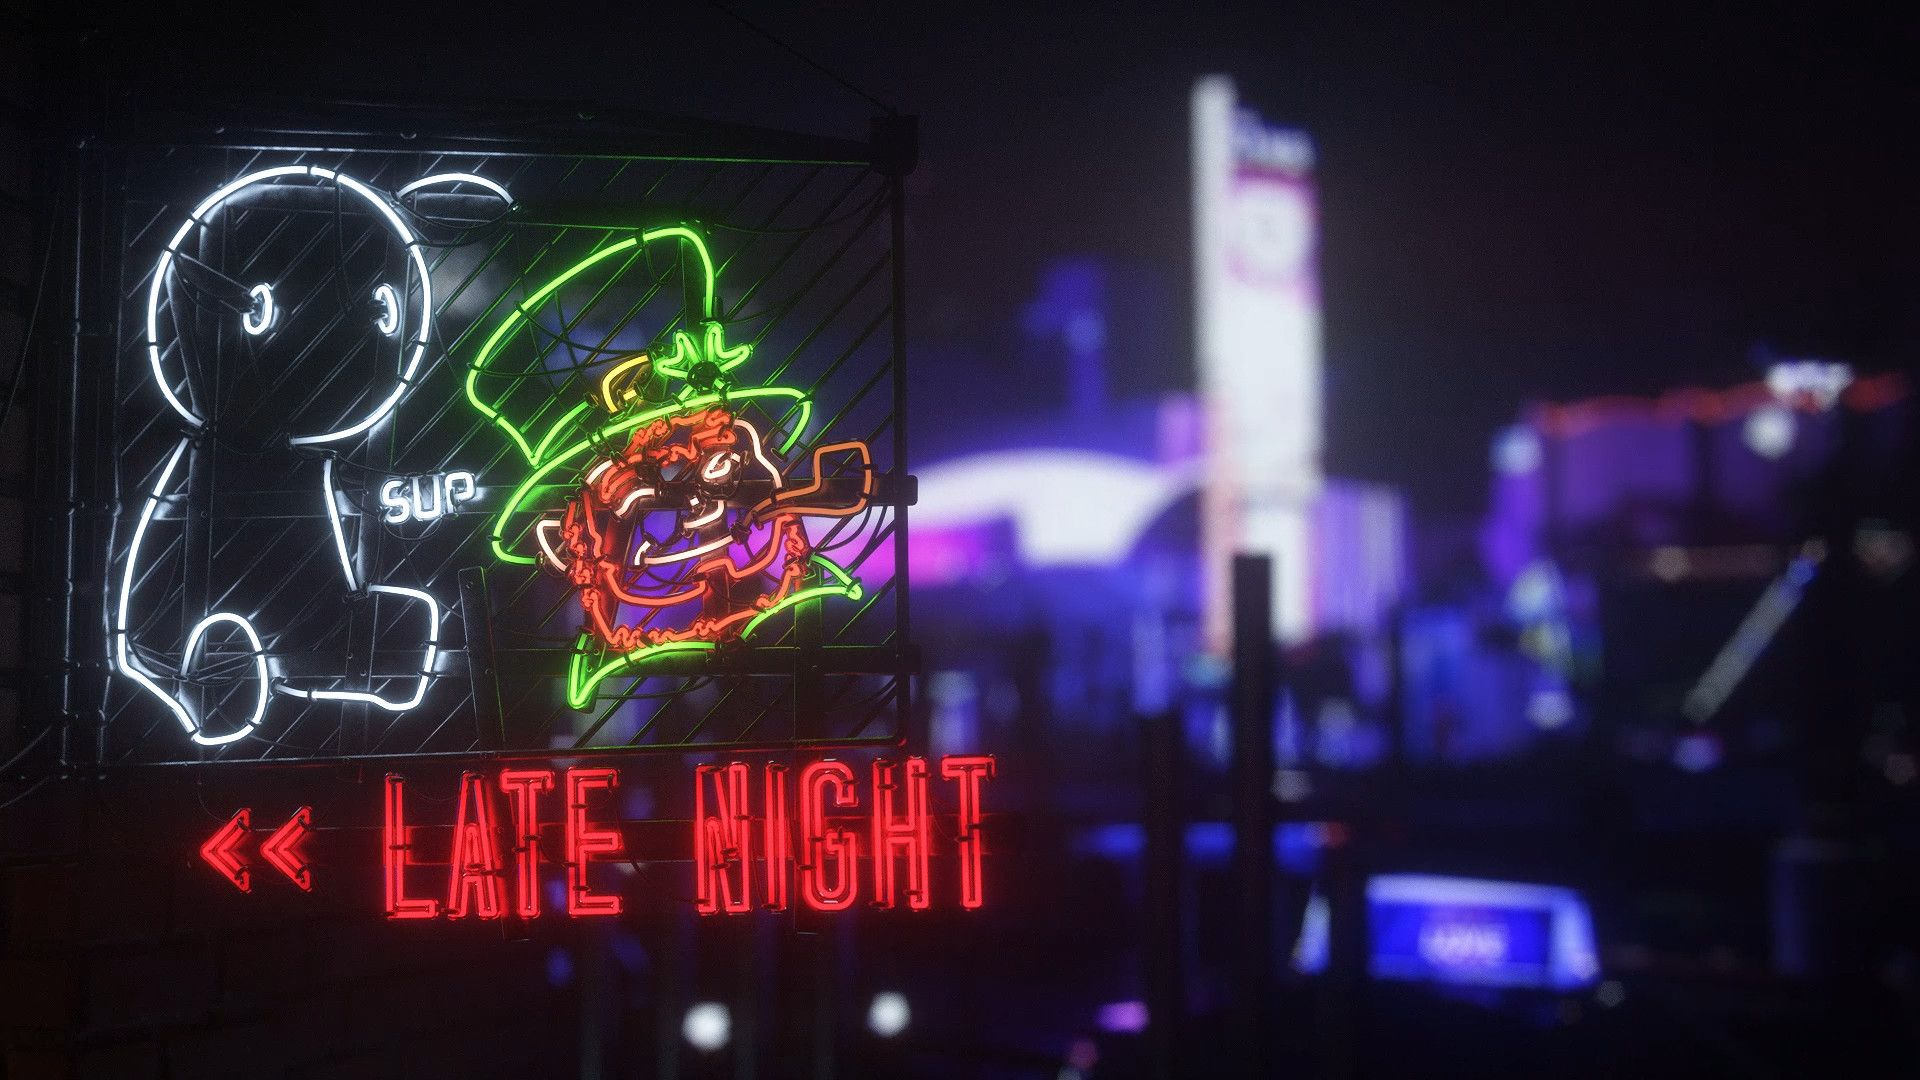 Late Night With Neon Idle Animation Wallpaper Engine Free Teknoloji